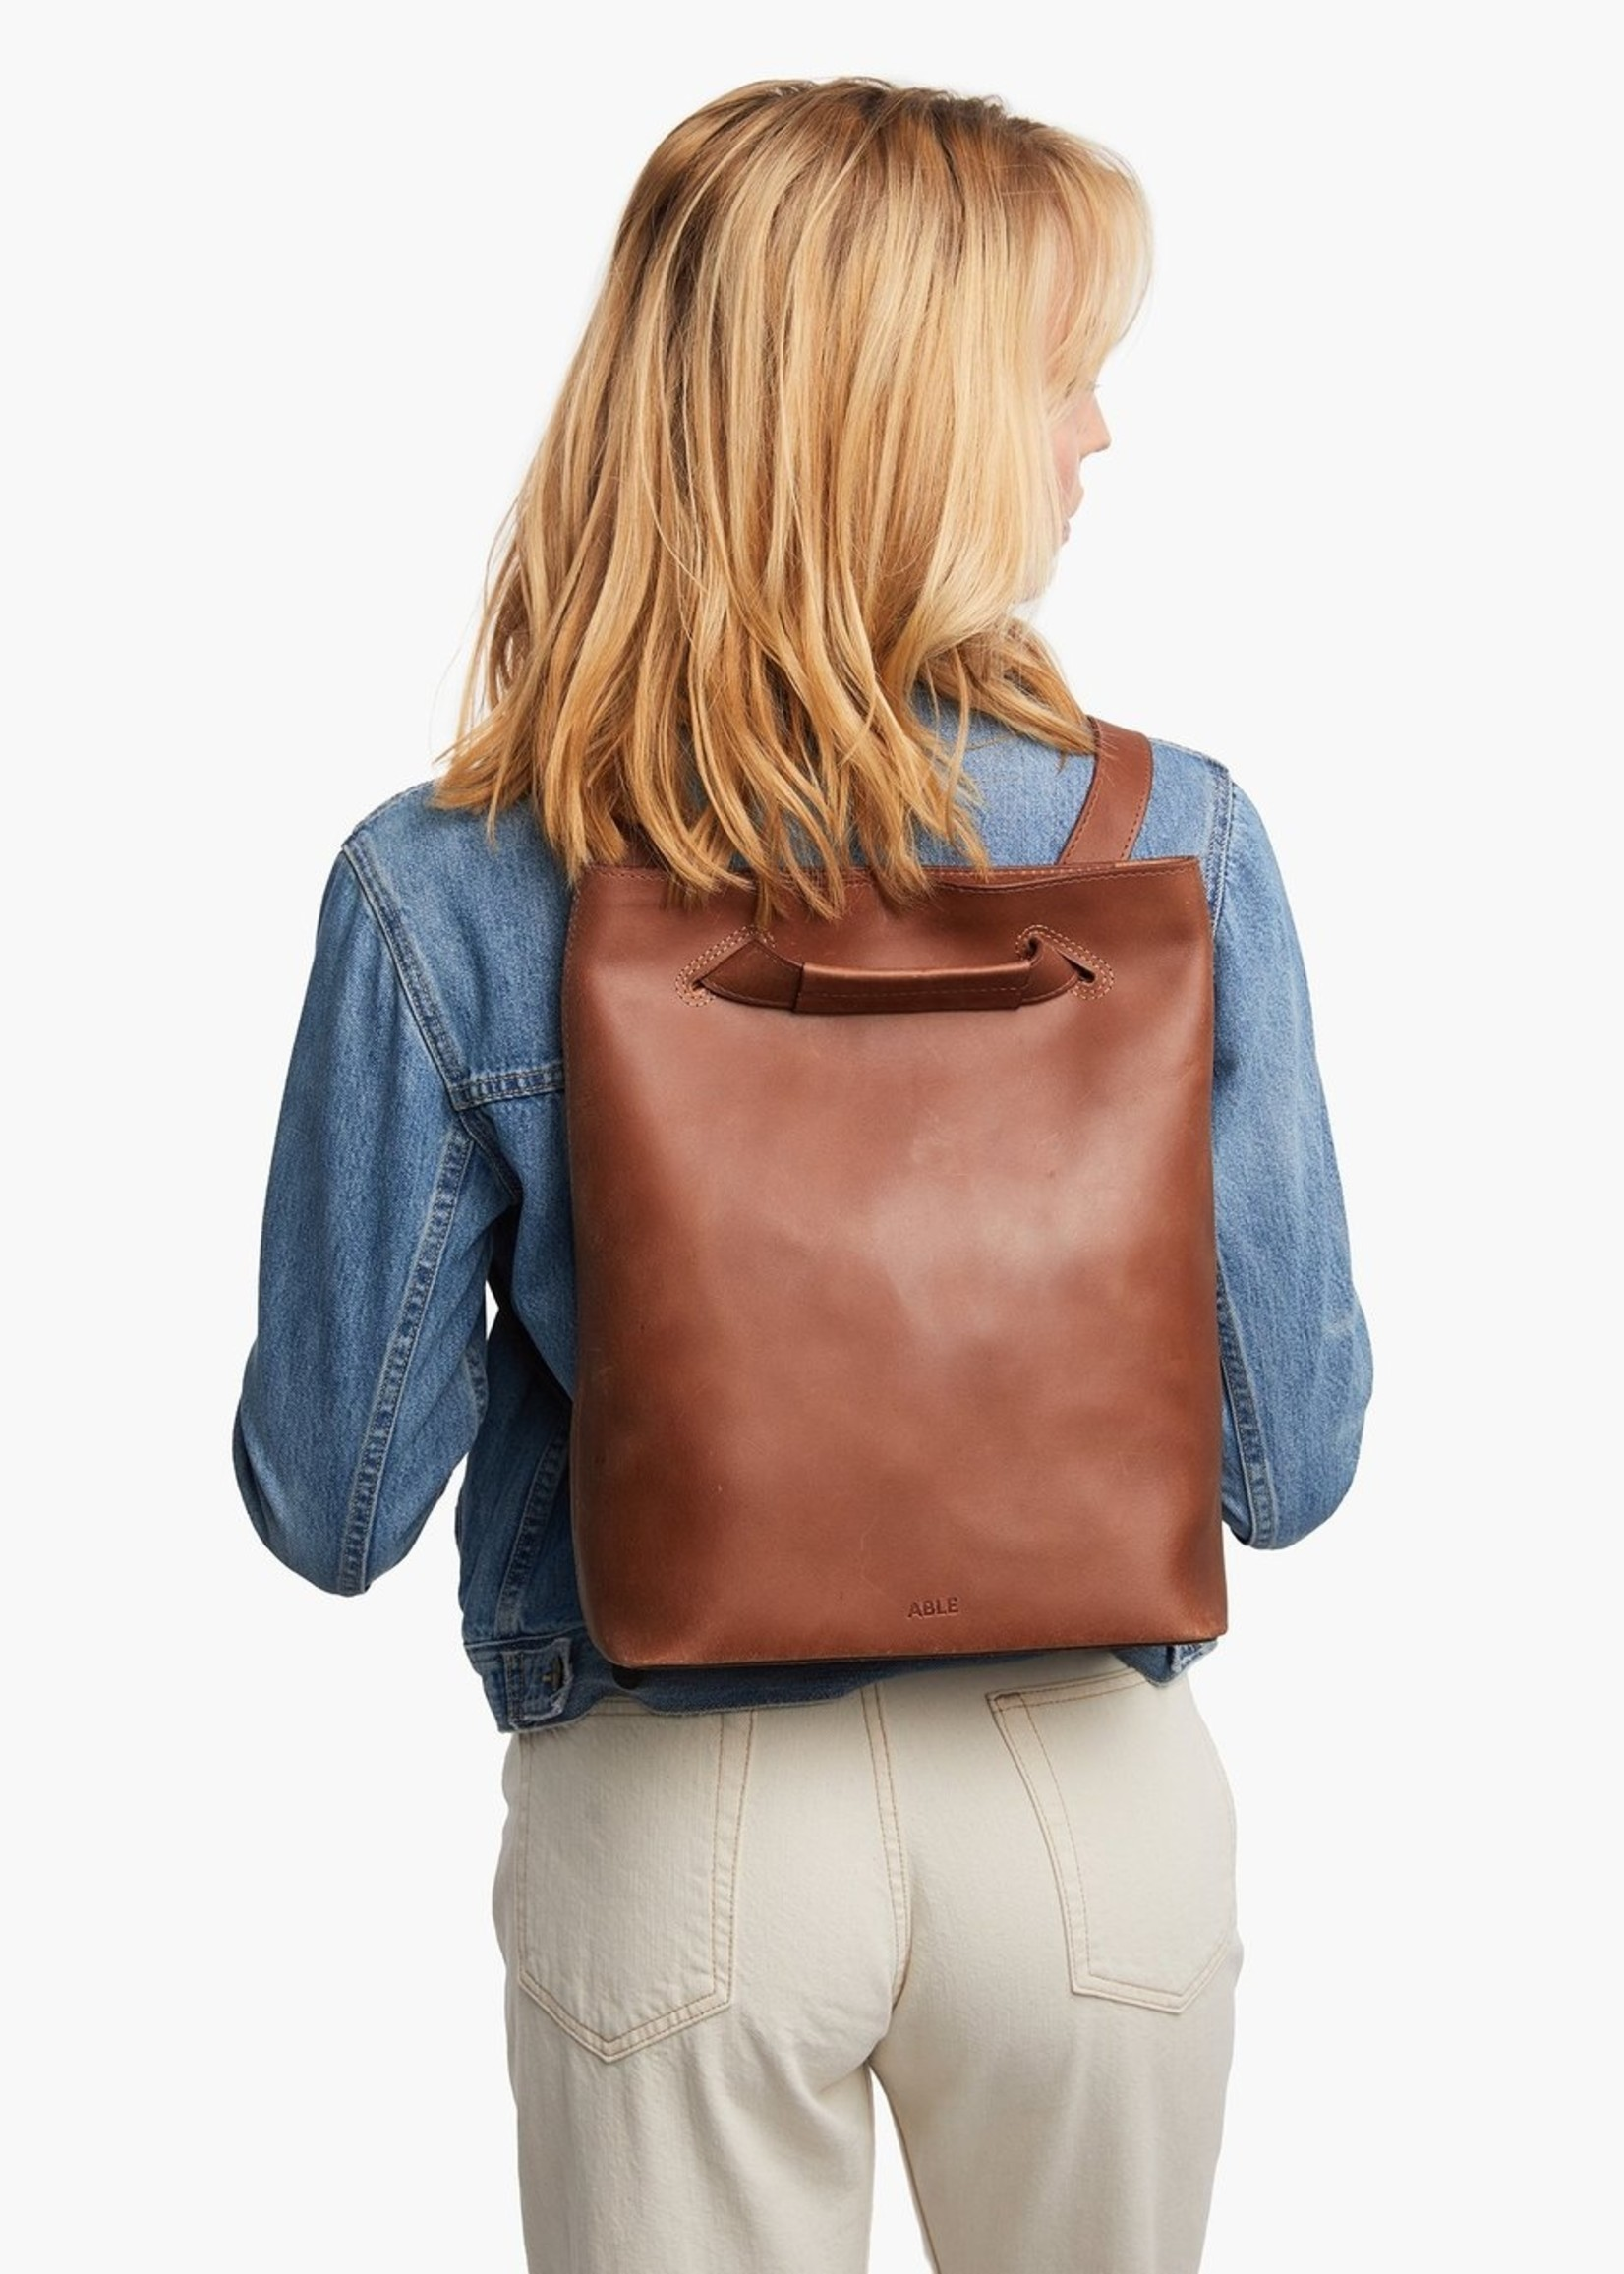 Able Leather Nelita Leather Backpack